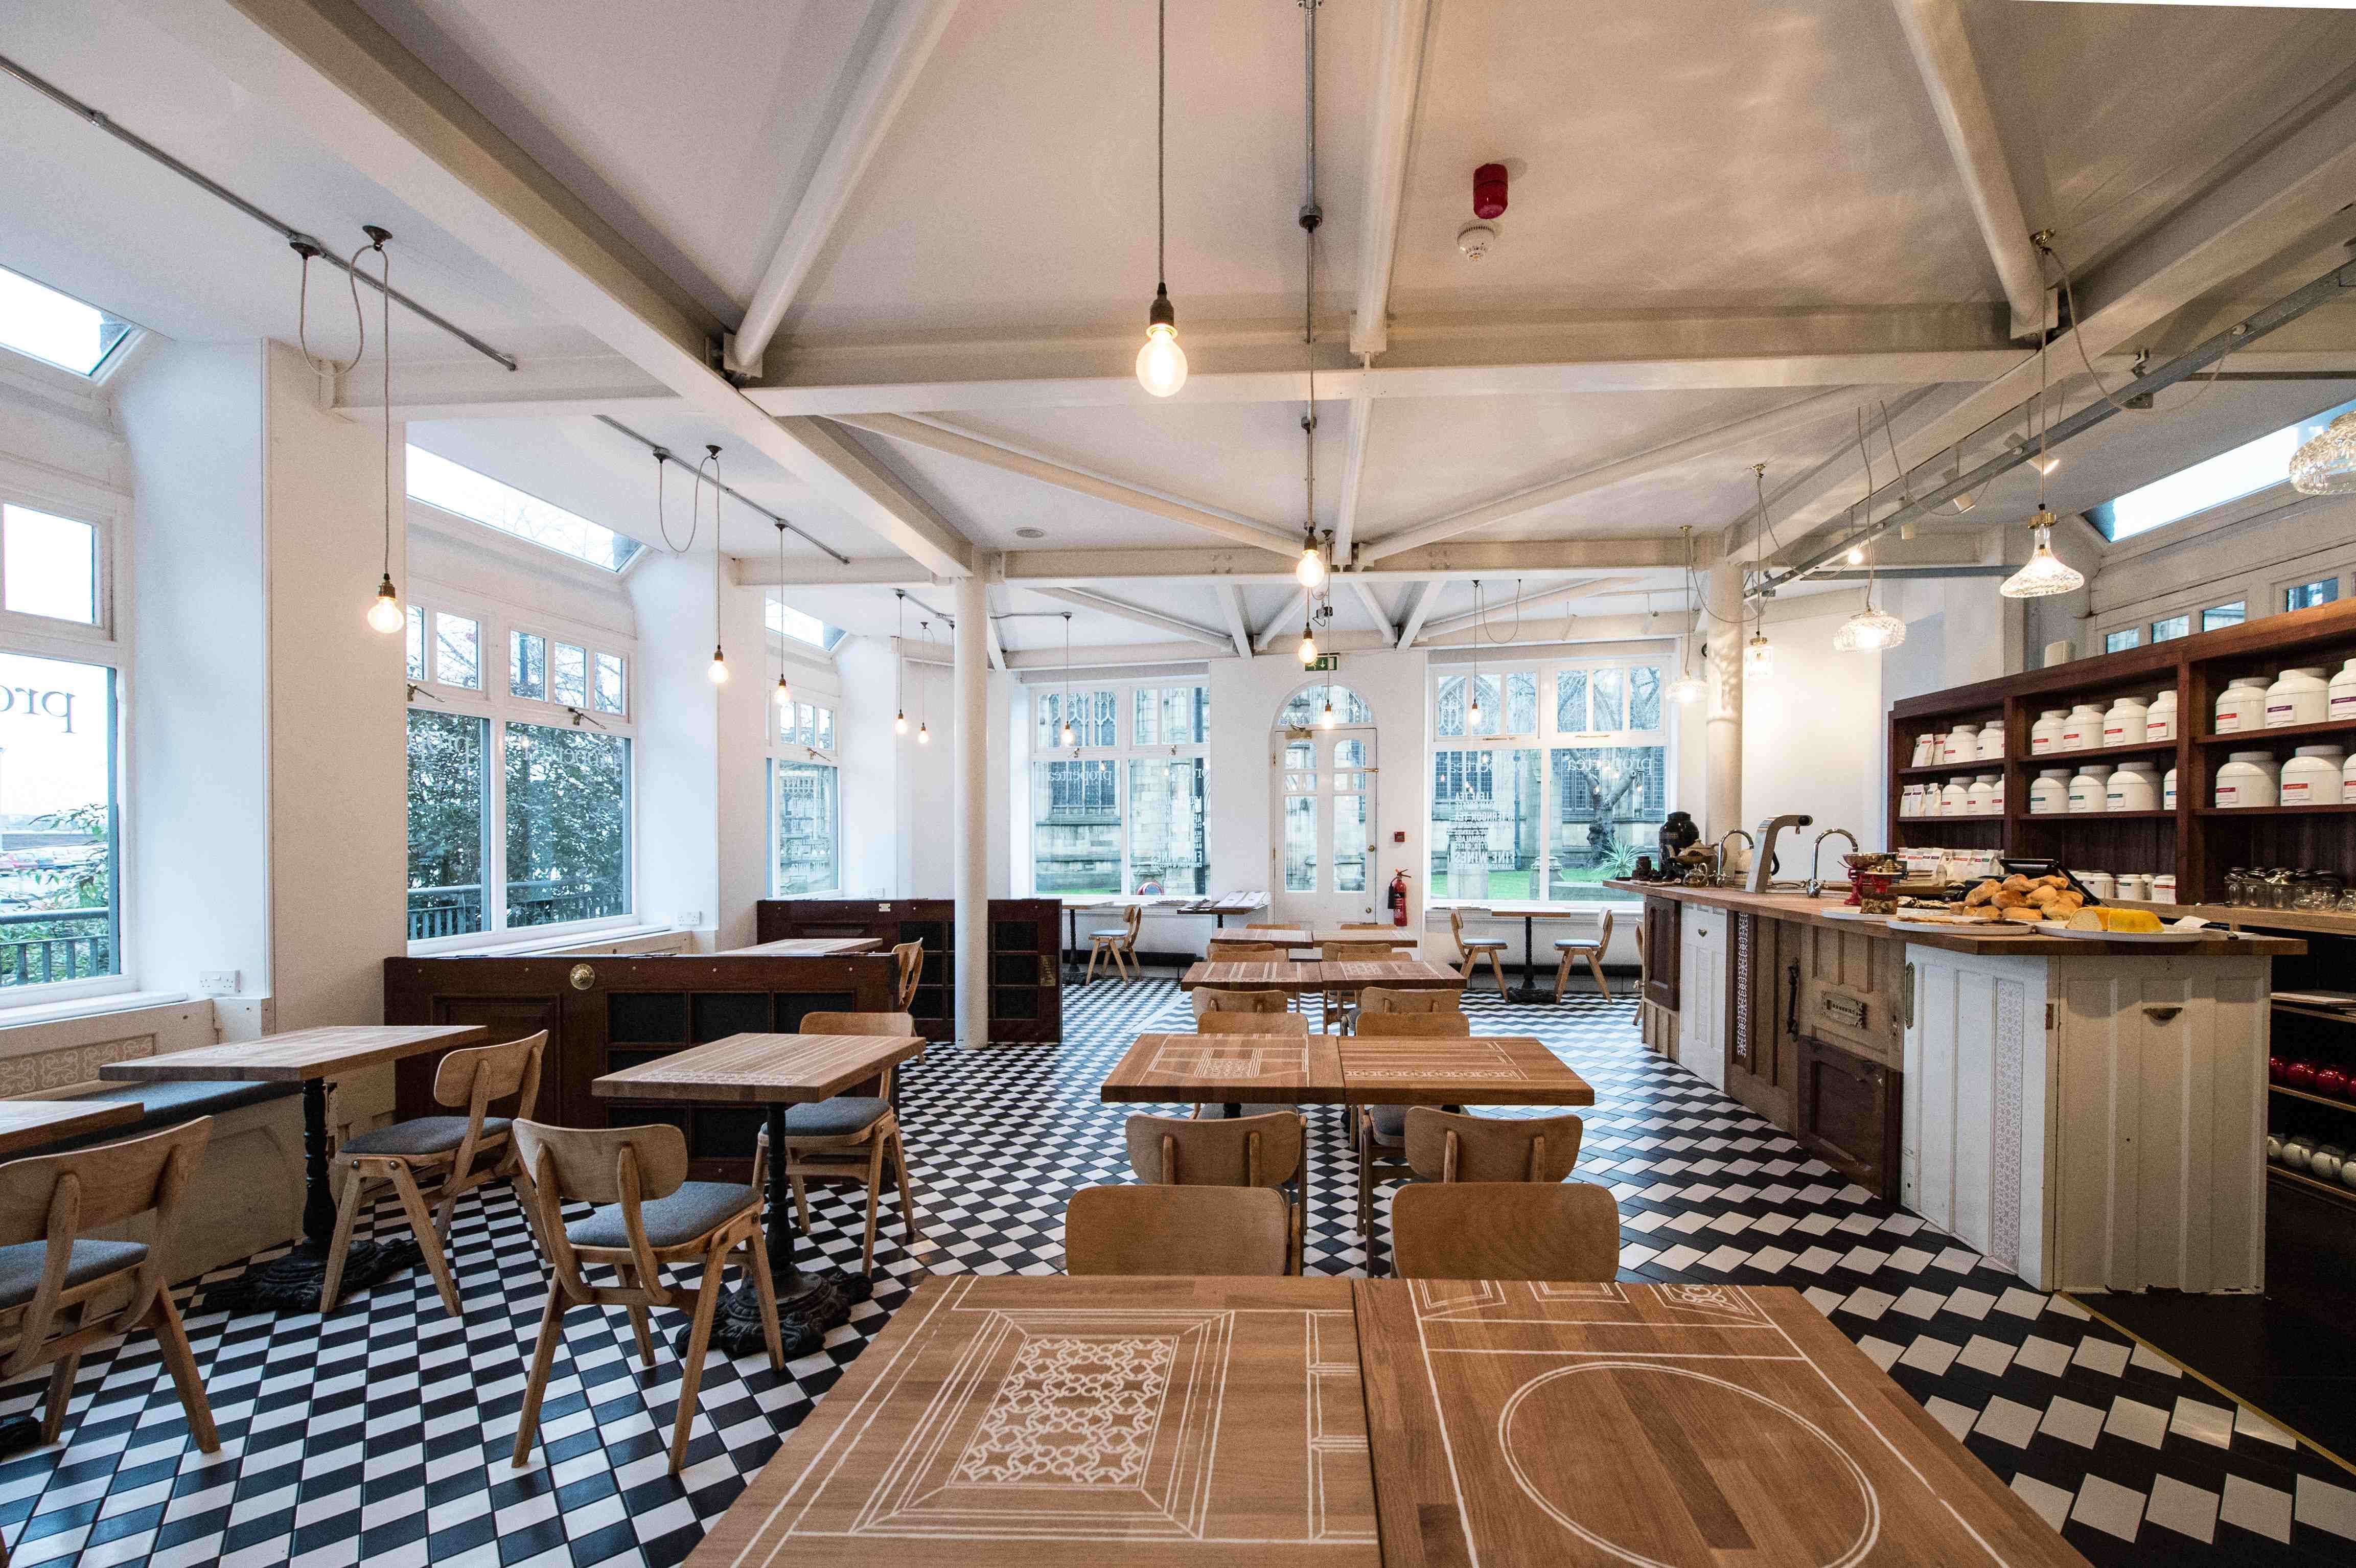 Proper Tea – Manchester Cathedral, Visitors Centre,10 Cateaton Street, Manchester, M3 1SQ. This quirky English tearoom offers a serene spot in the old heart of the city. Try their selection of loose-leaf teas and amazing cakes.